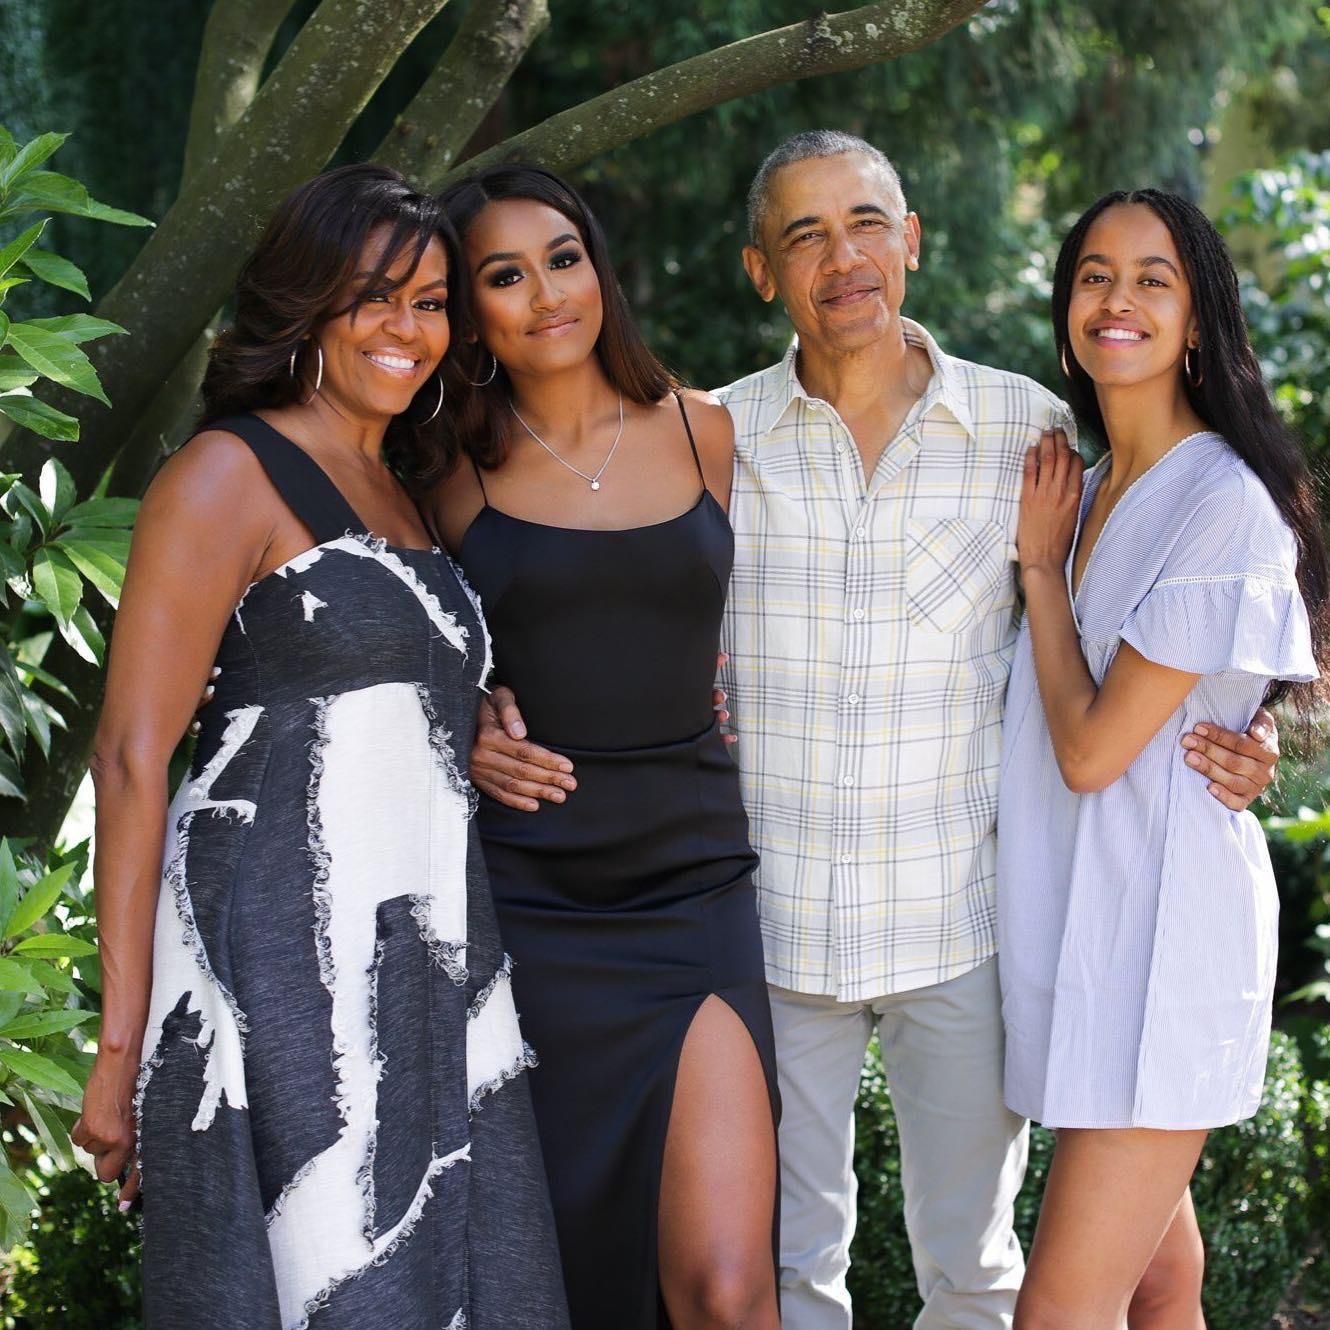 Pics The Obama S Wish You A Happy Thanksgiving With Images Barack And Michelle Malia And Sasha Michelle Obama